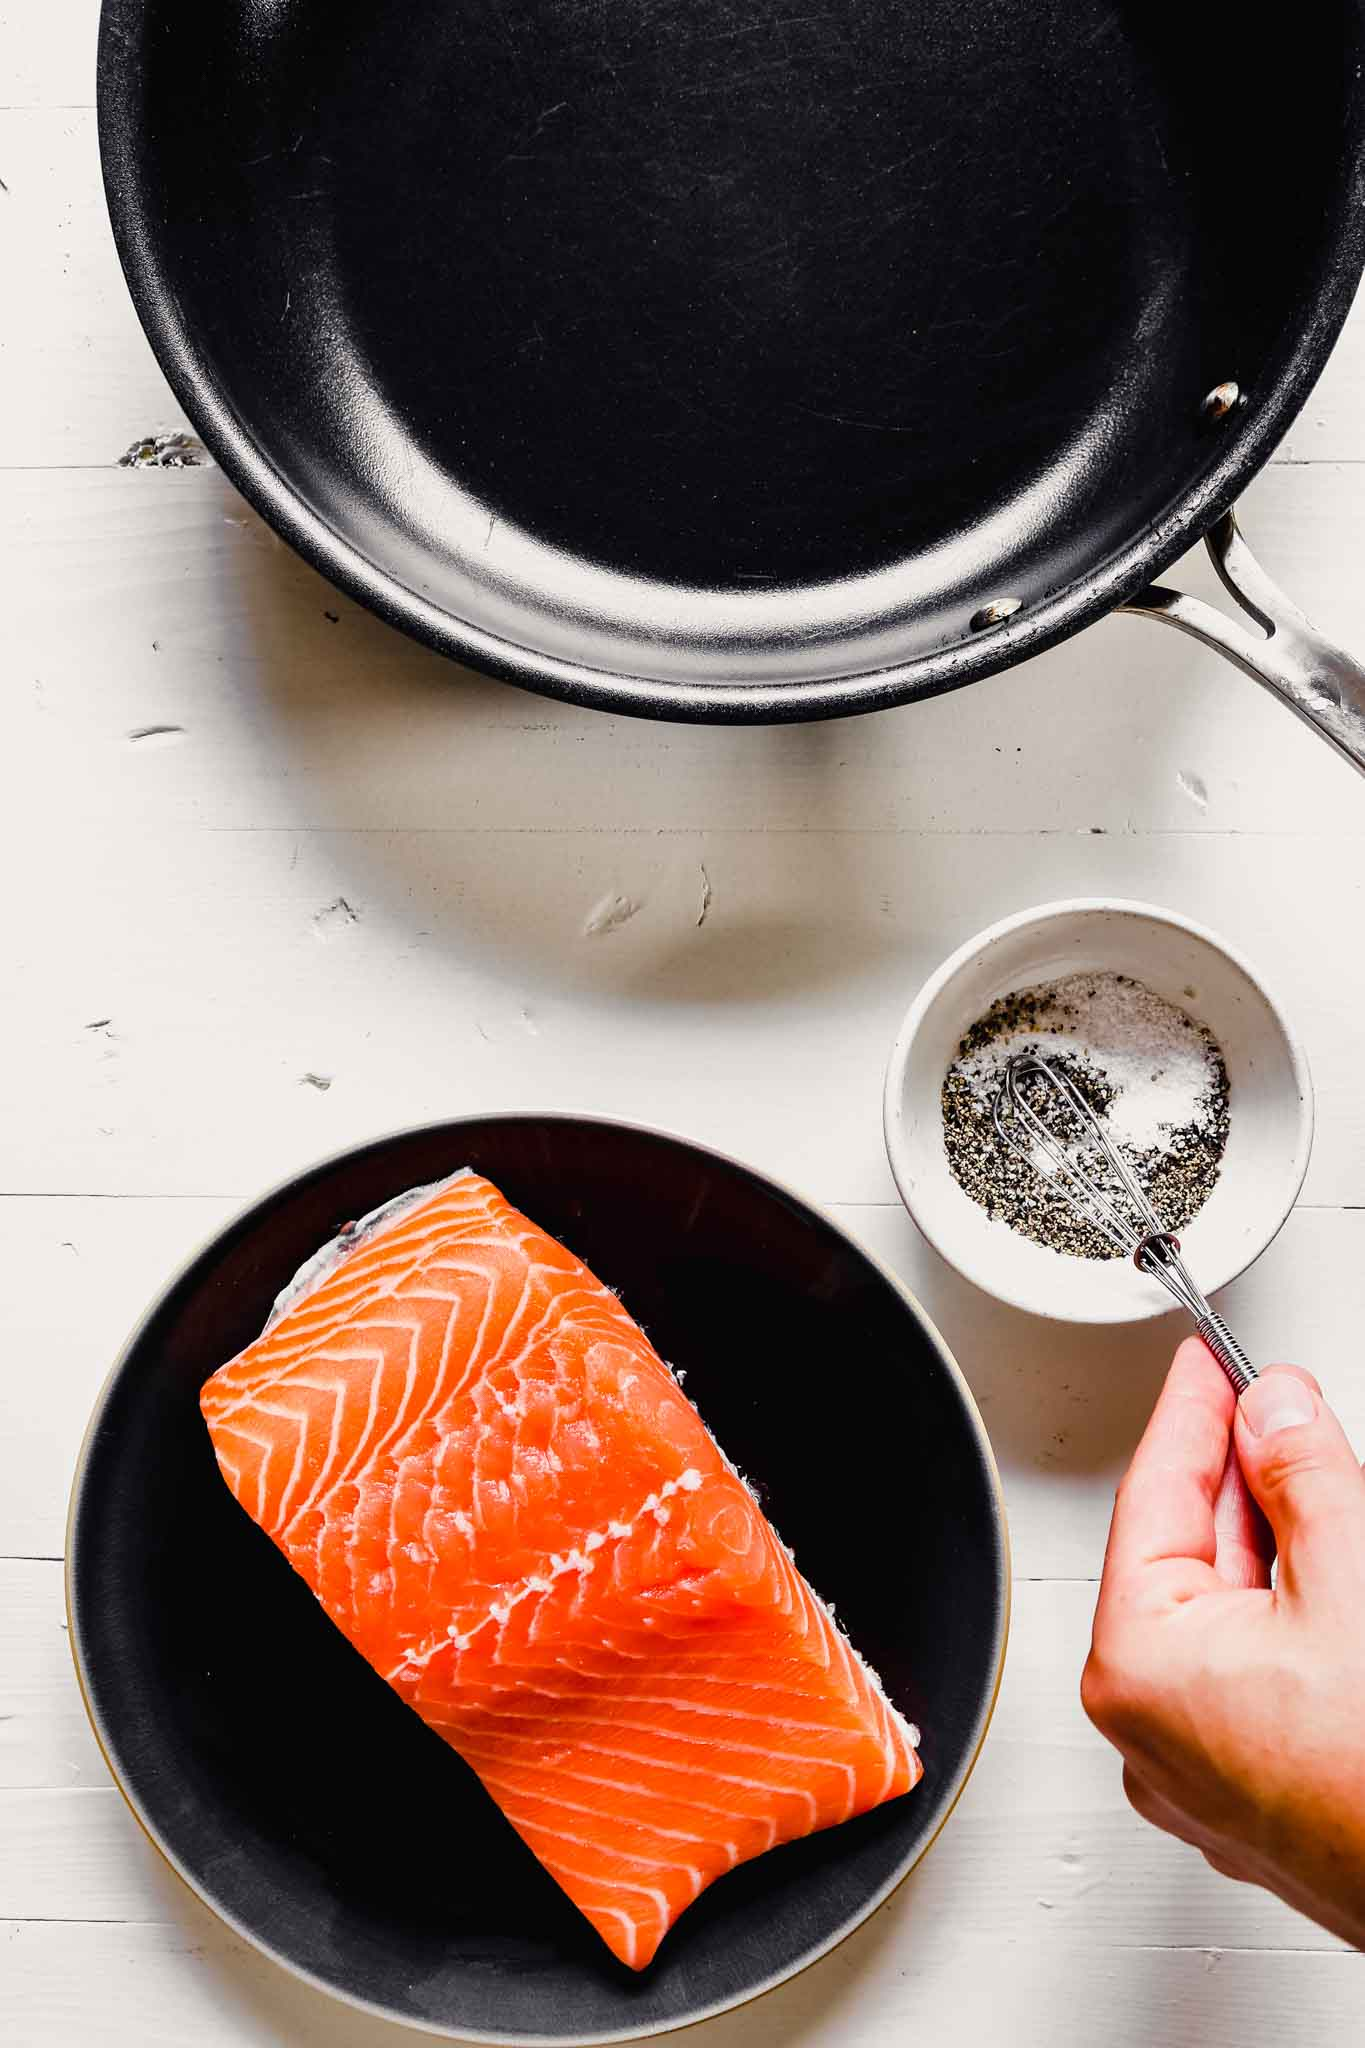 overhead image of a filet of salmon on a dark plate with a skillet up to the top and someone whisking salt and pepper together in a small bowl.